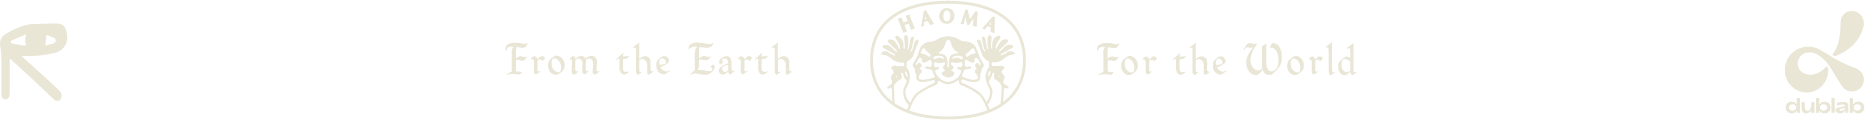 from the earth, for the world. haoma/dublab